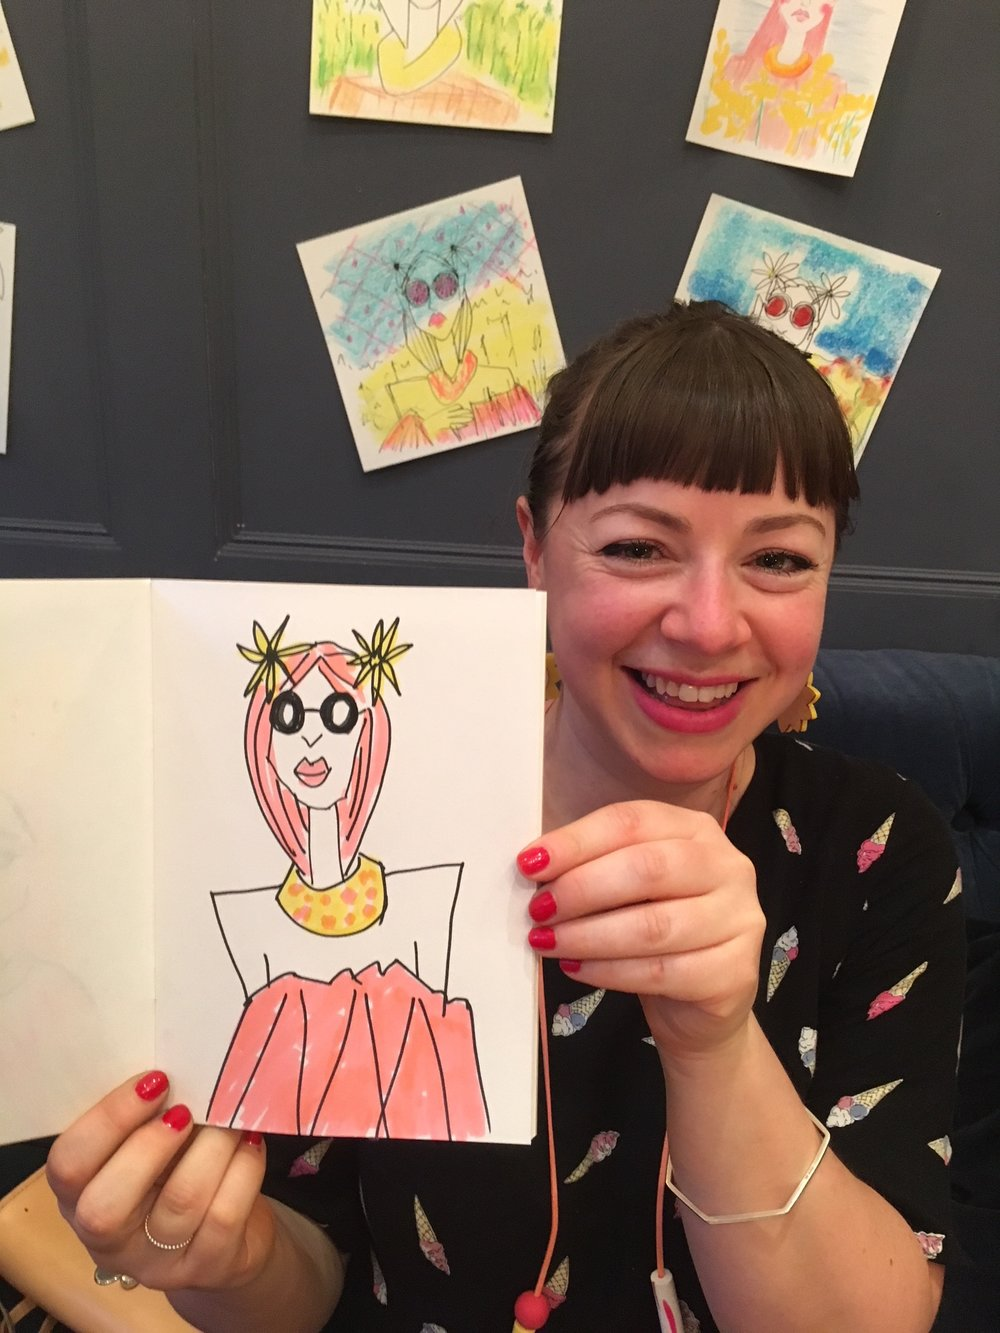 Our Kayti - rightfully chuffed with her awesome illustration!  See more pics from the night here